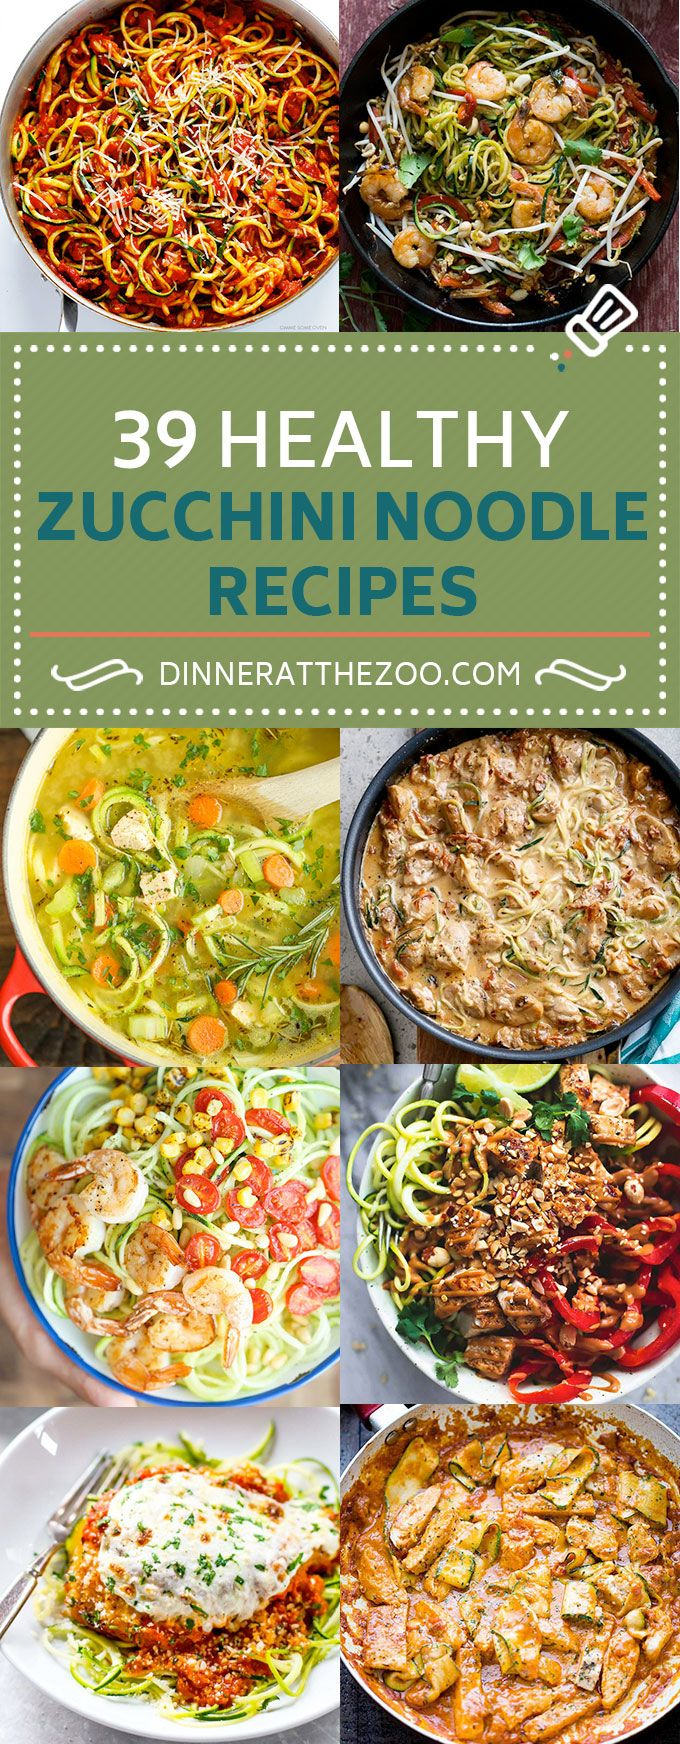 39 Healthy Zucchini Noodle Recipes Zoodles Dinner At The